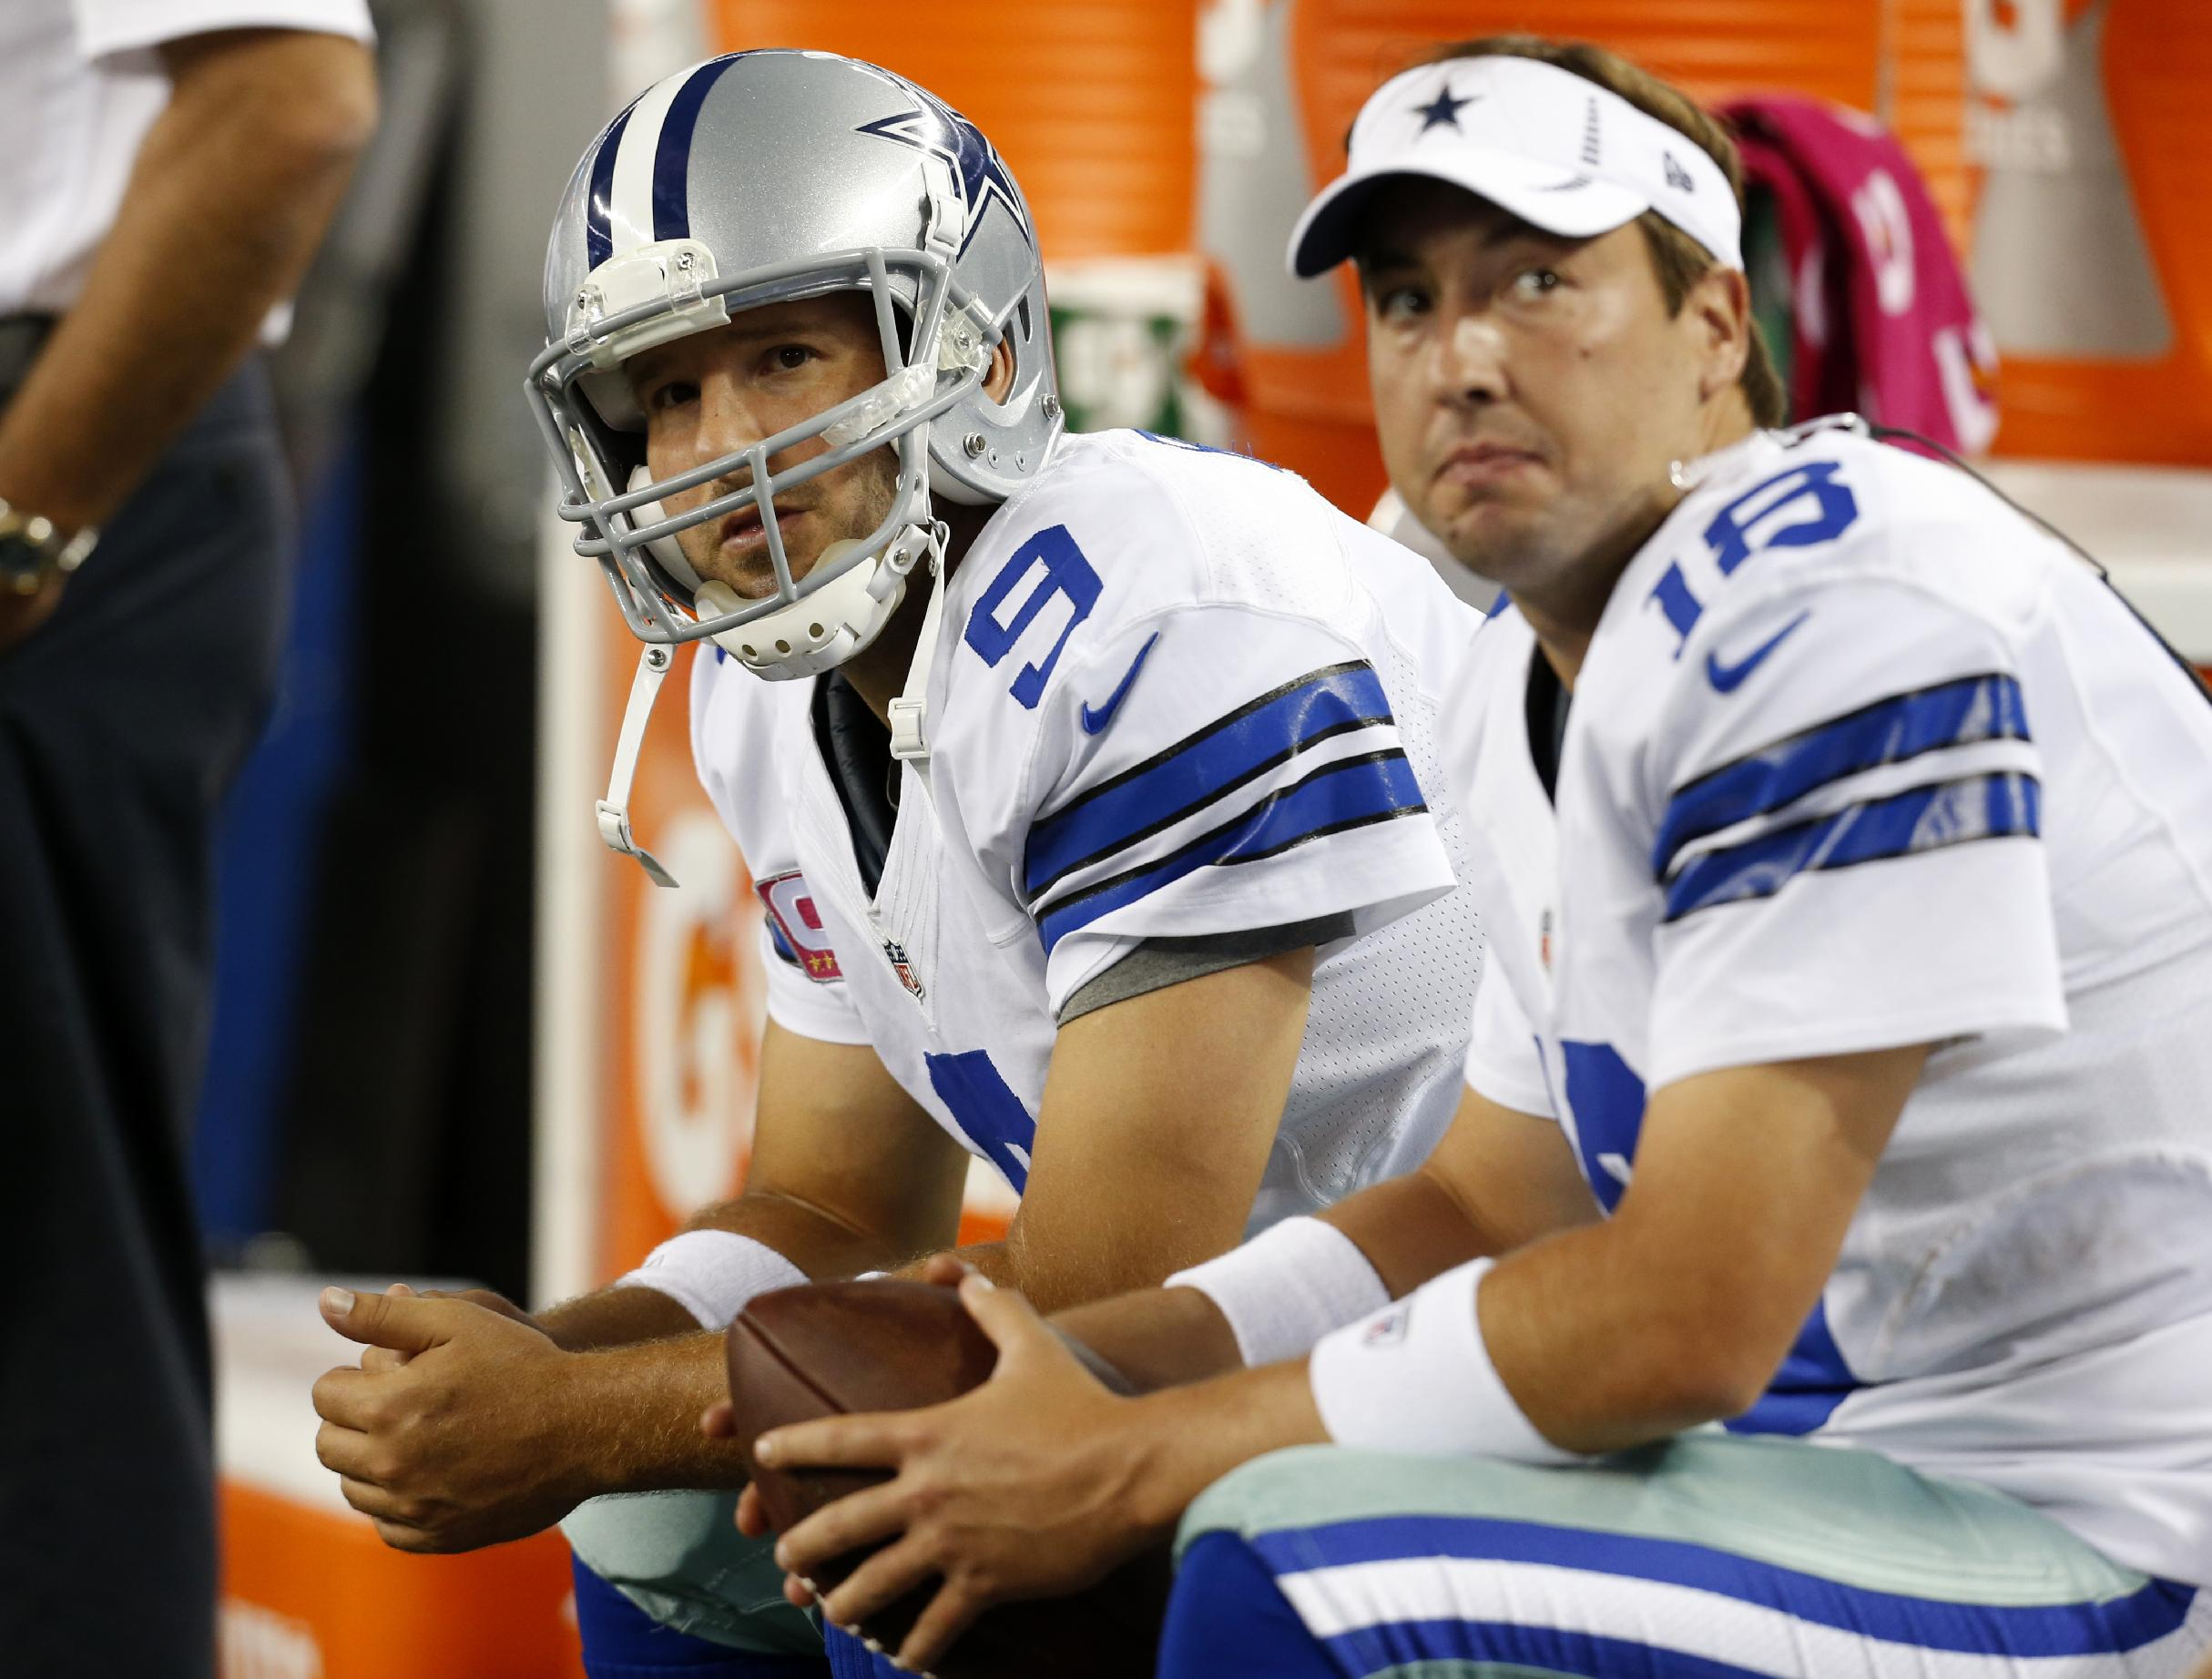 Dallas Cowboys release backup QB Kyle Orton